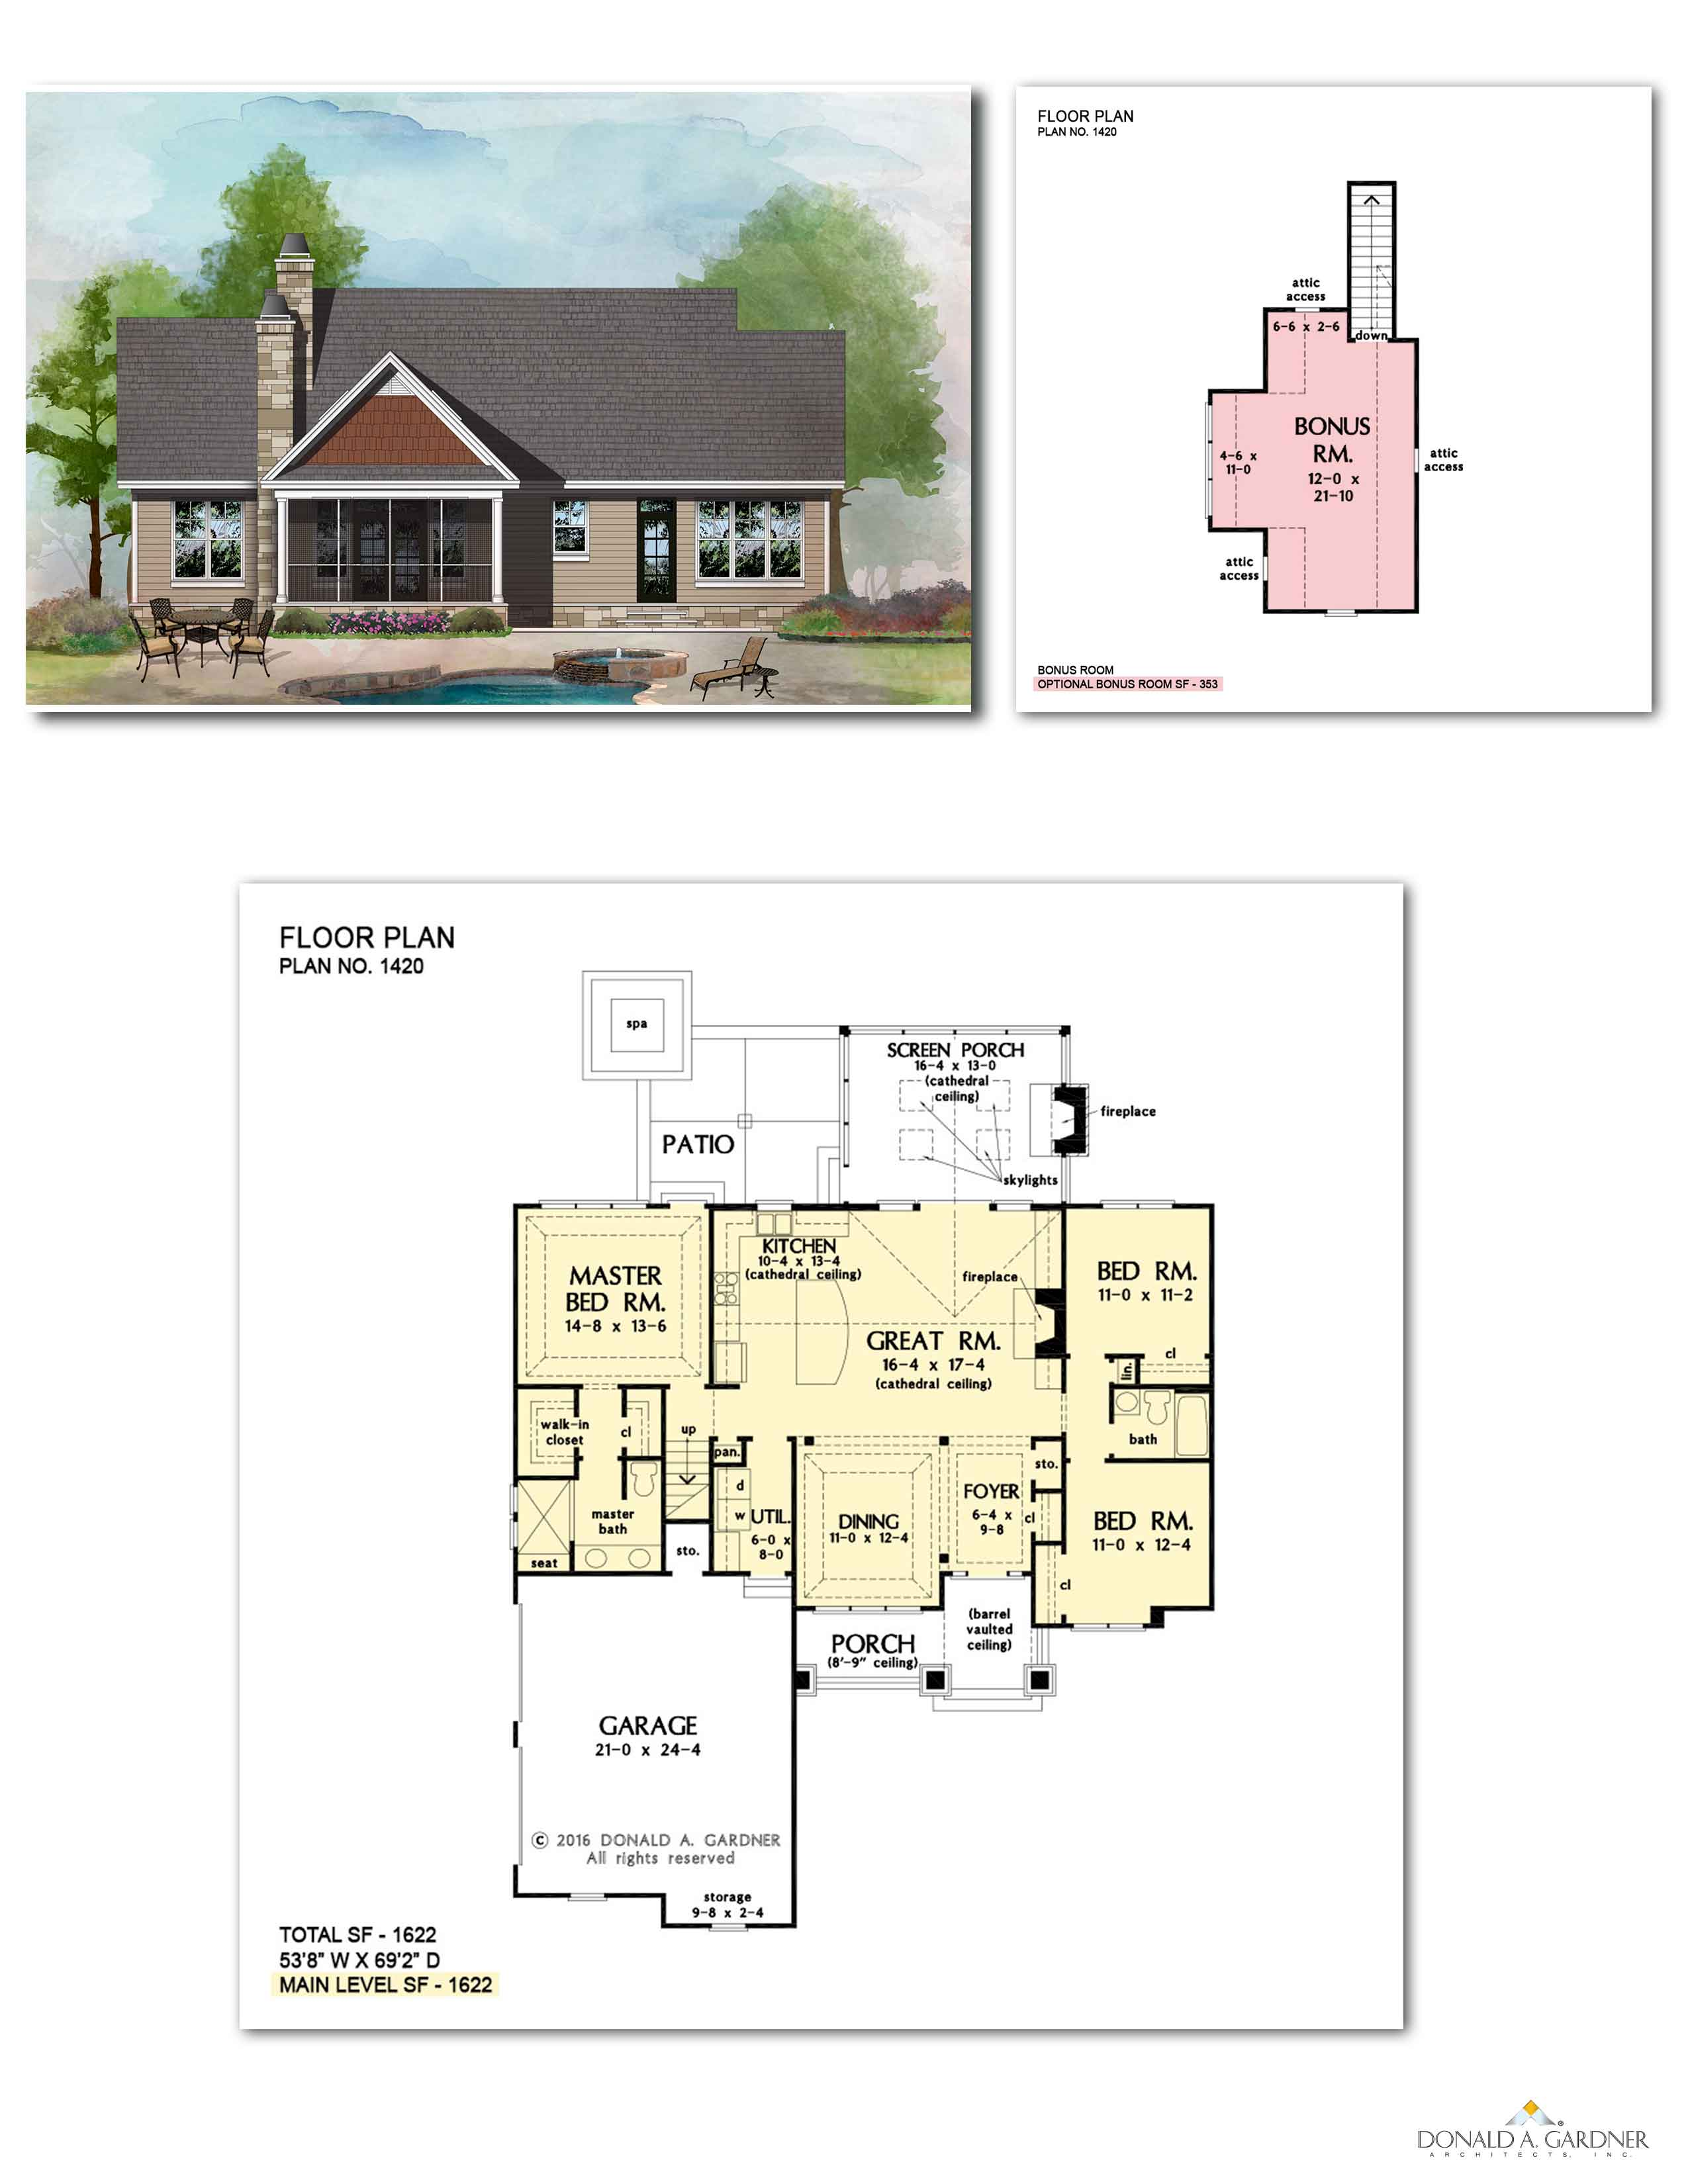 Home Plan 1420 - The Miranda